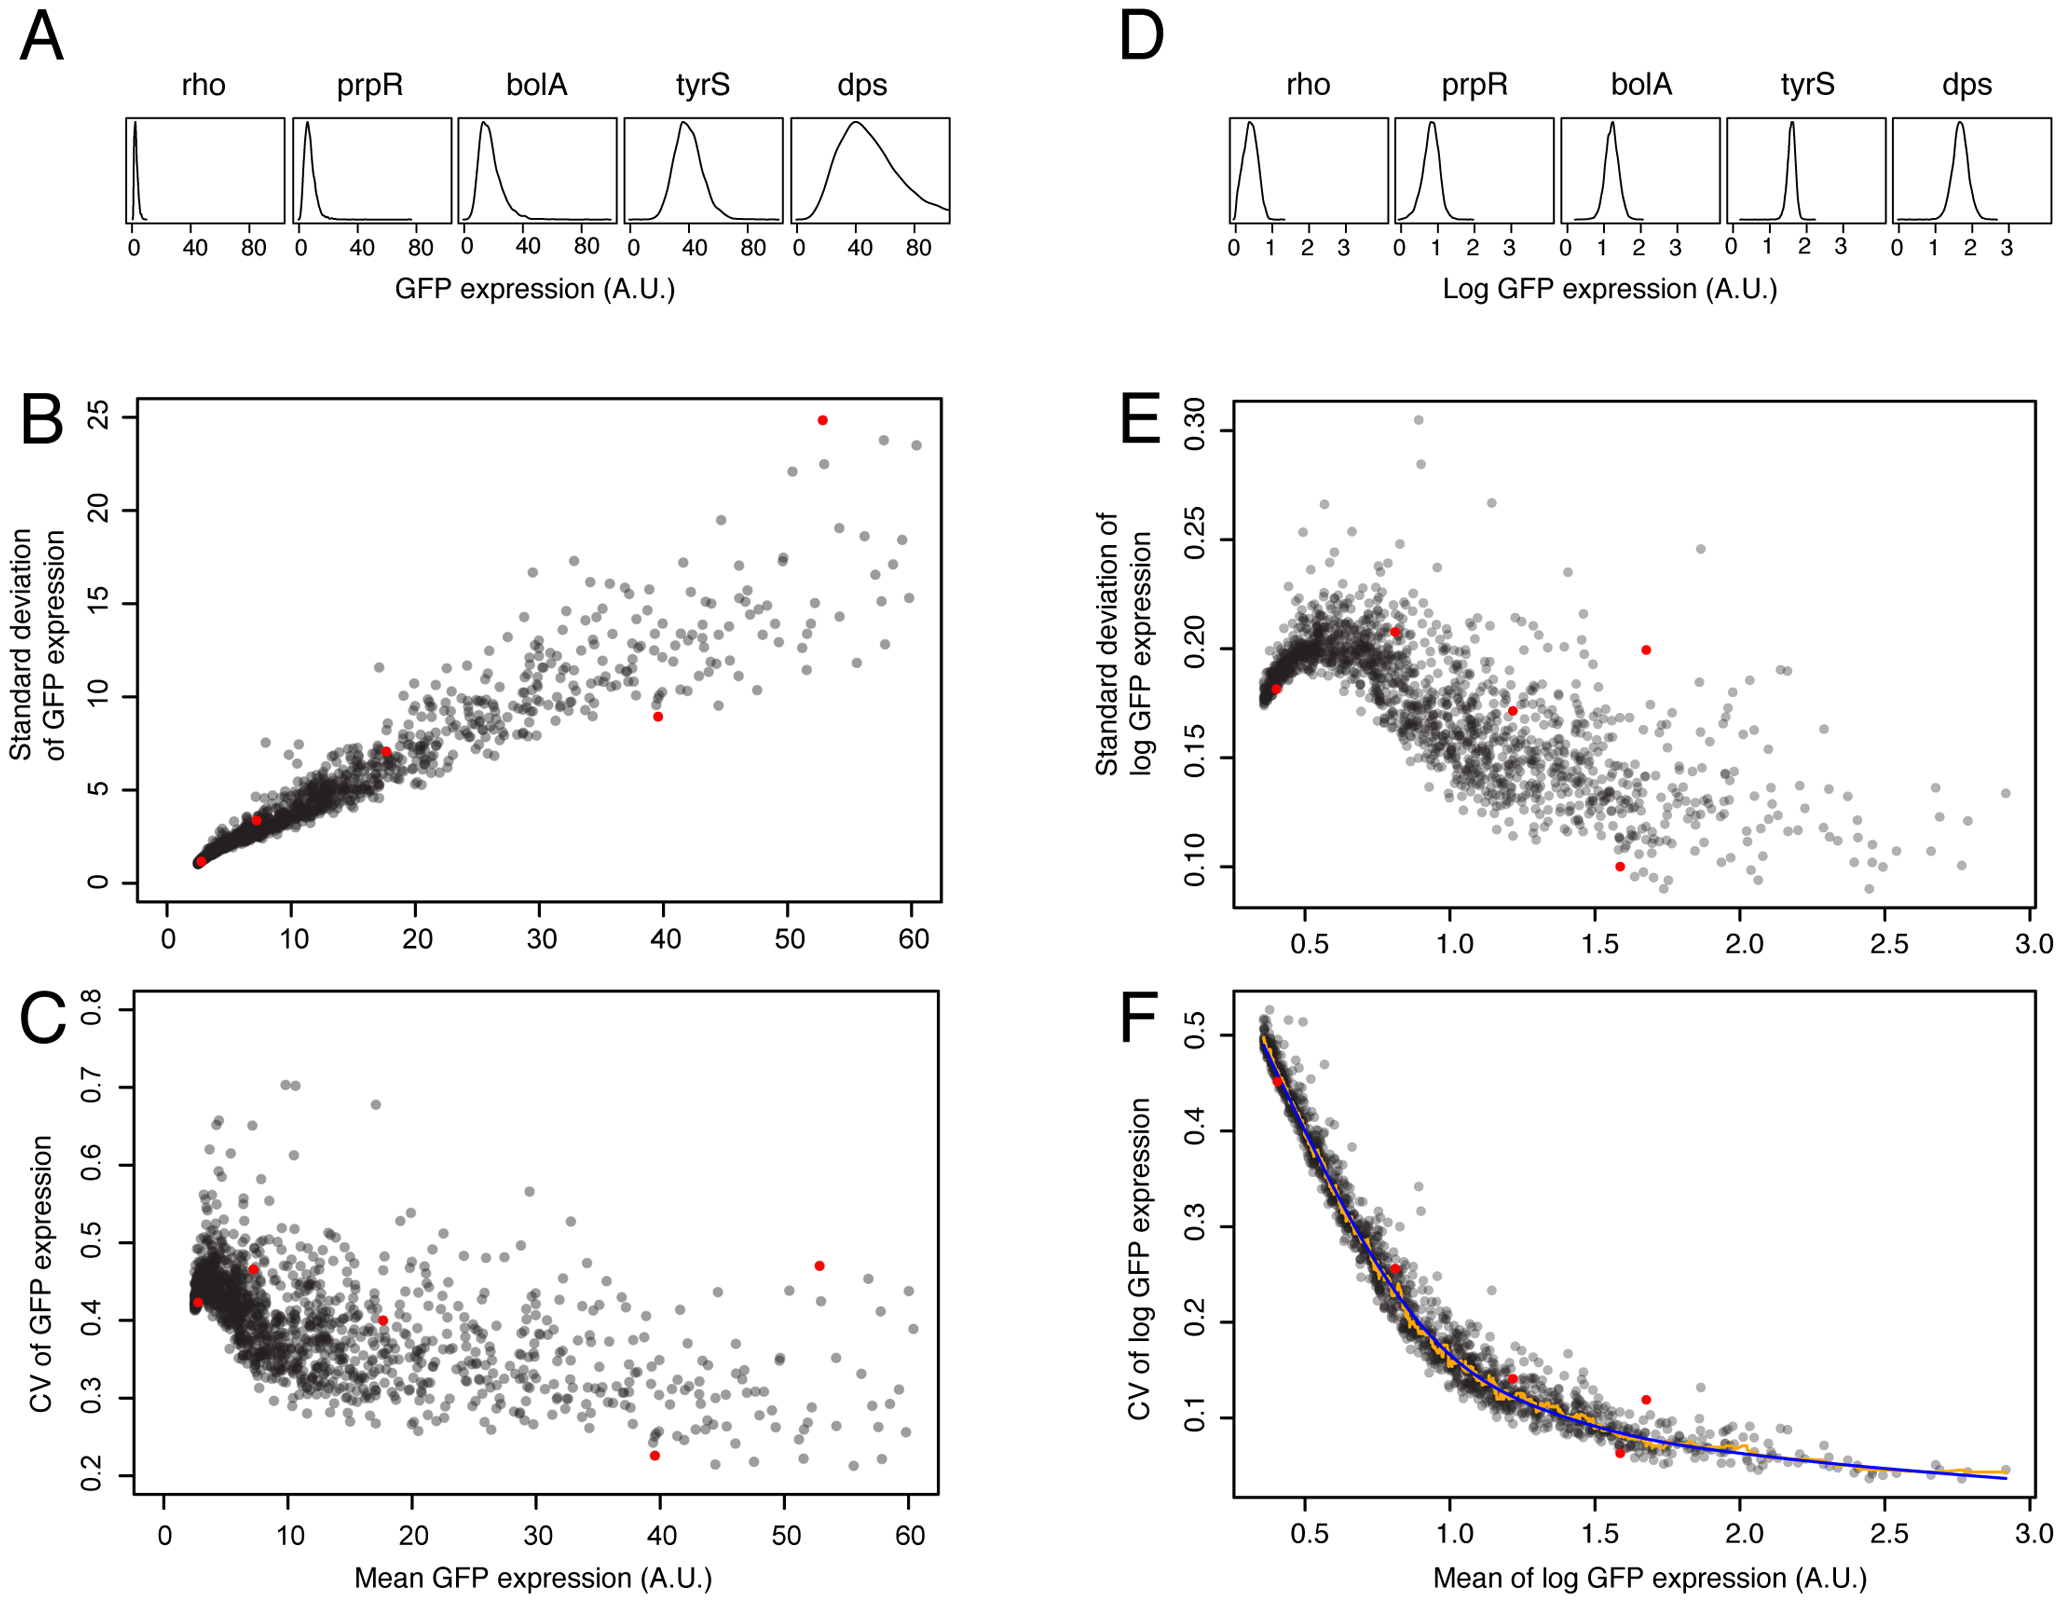 Dependence of variation in mRNA expression on mean mRNA expression level and derivation of a noise metric.